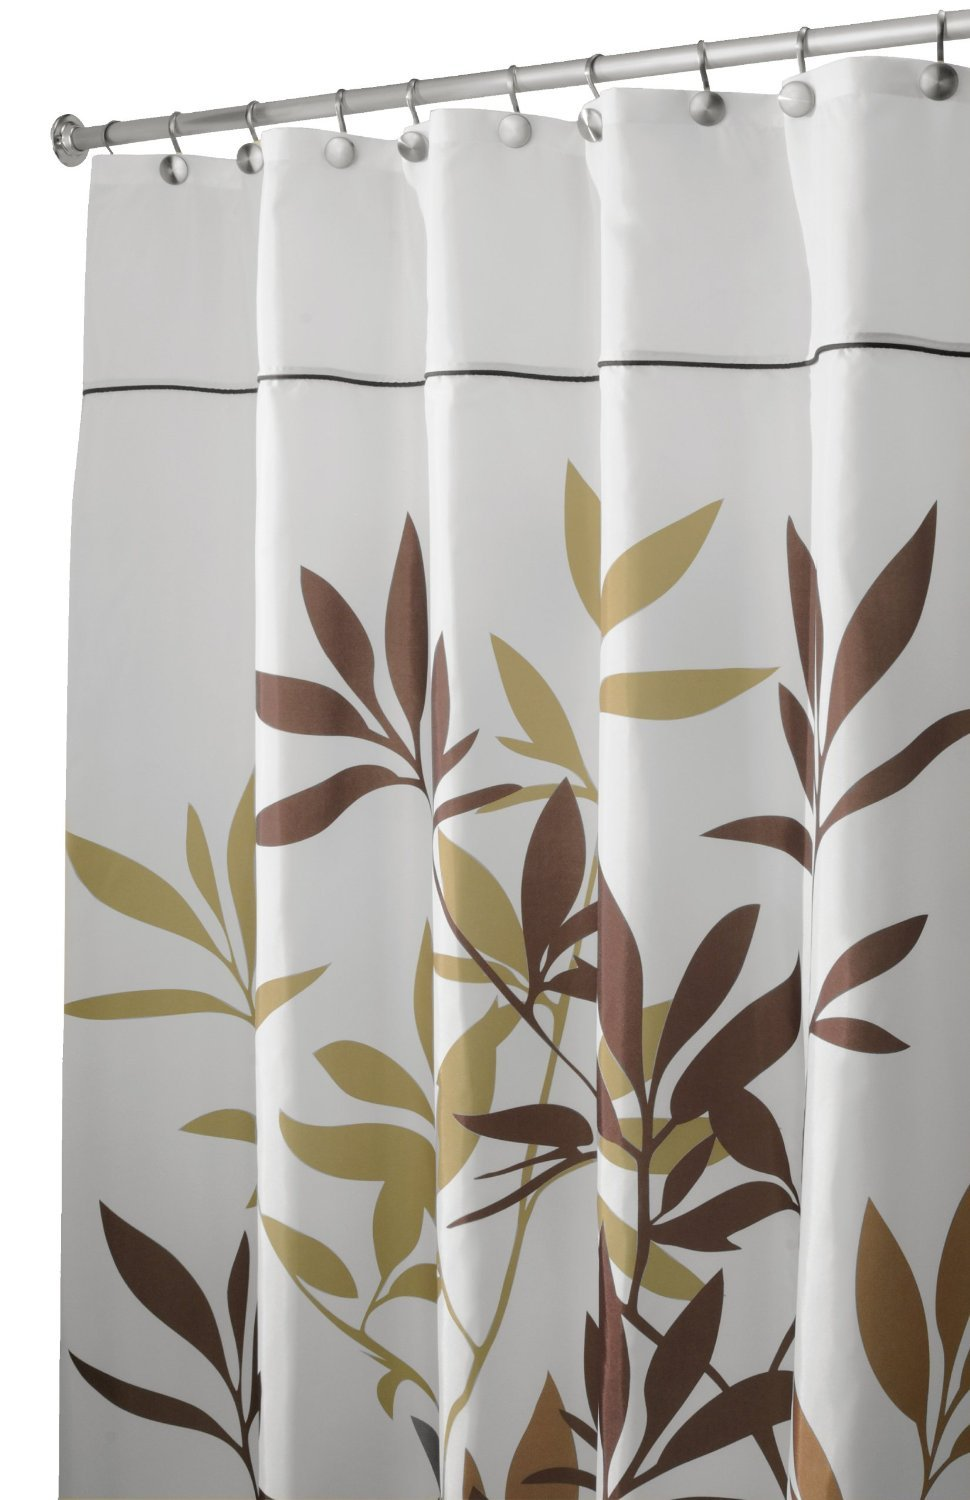 Amazon.com: InterDesign 35640 Leaves Fabric Shower Curtain ...